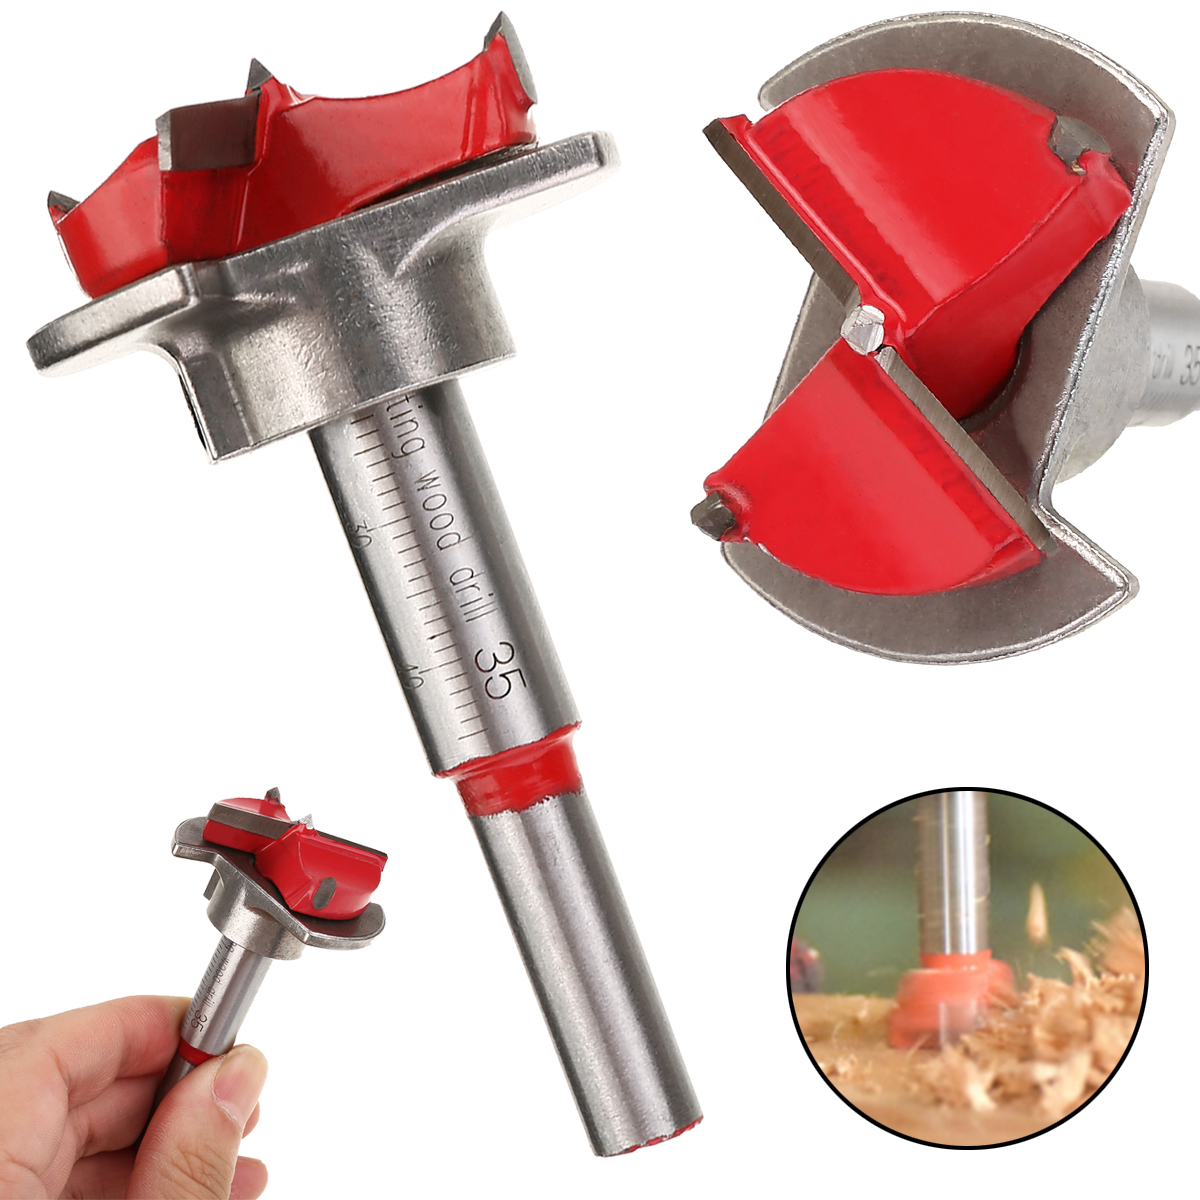 1pcs Woodworking Drill Bits Tool 35mm Hinge Cutting Machine Boring Tool Hinge Open Hole Forstner Drilling Power Tools